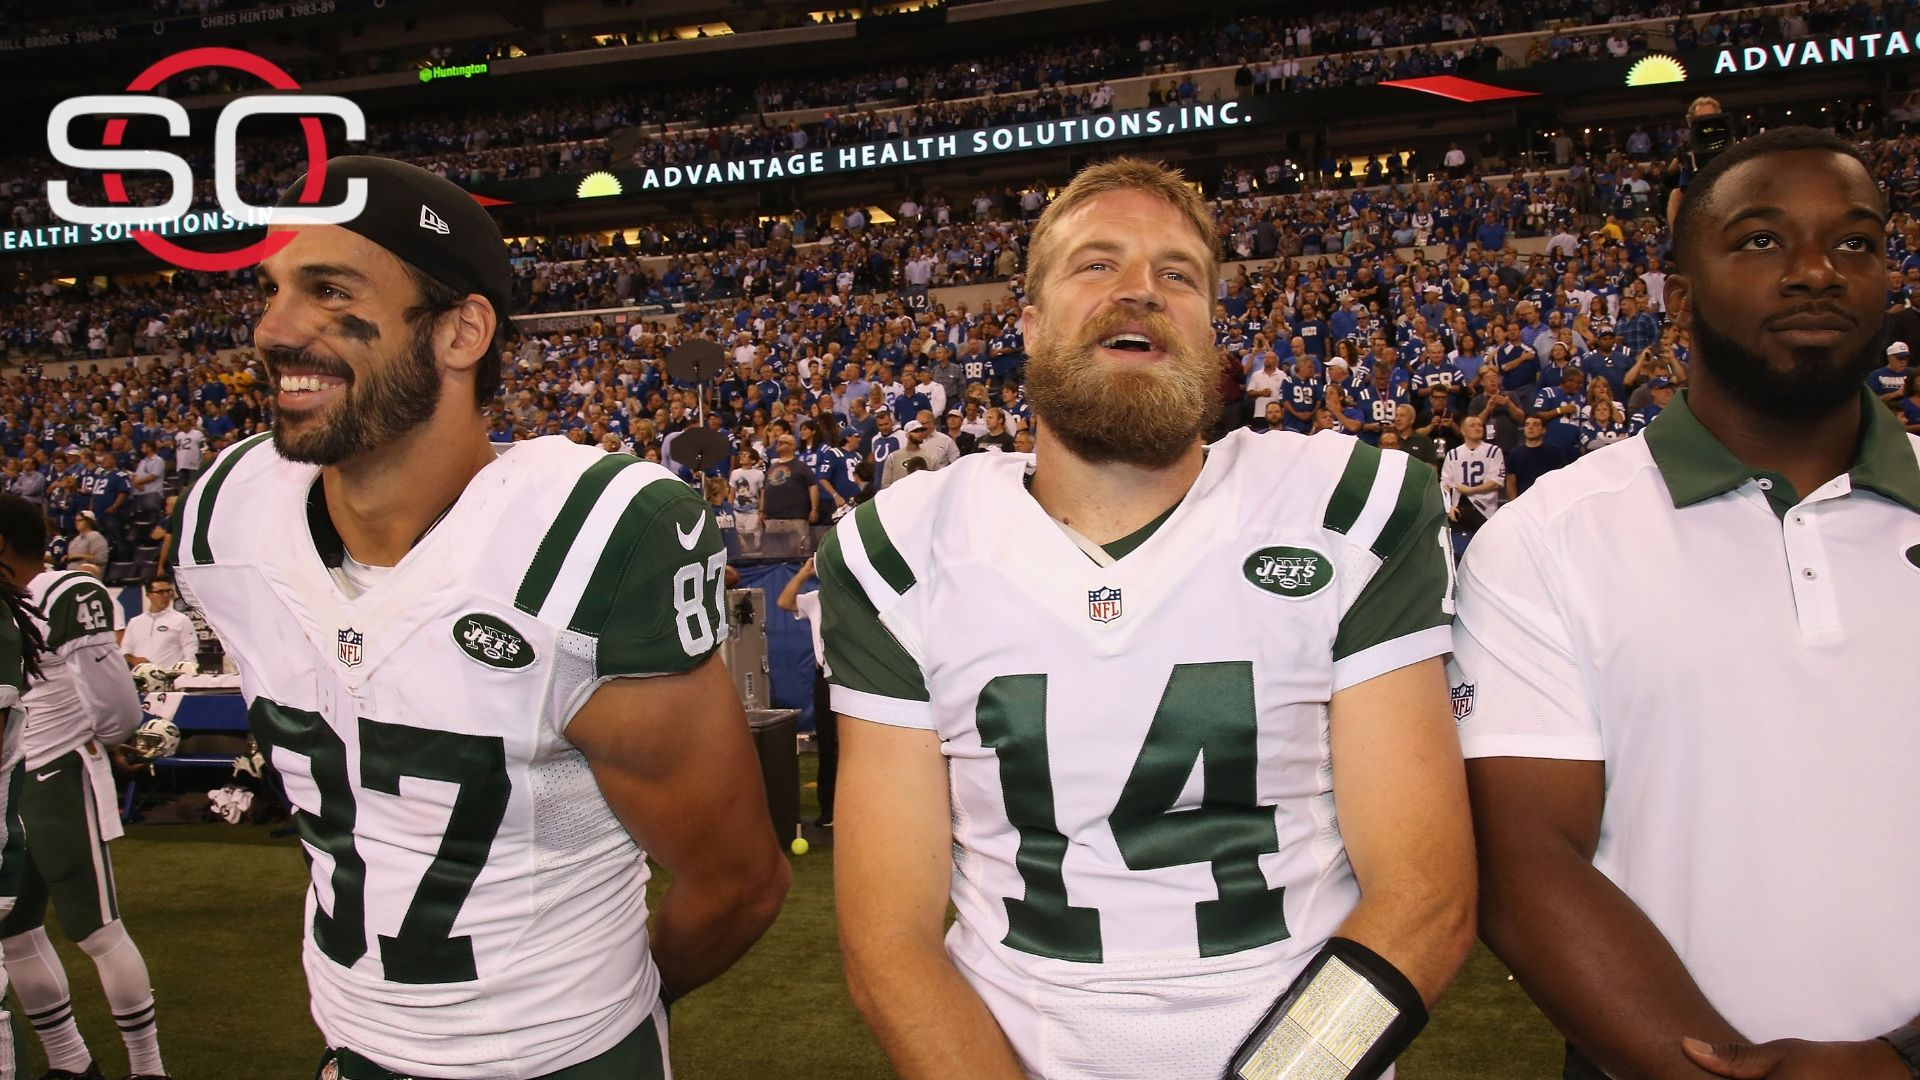 Decker supports QB Fitzpatrick